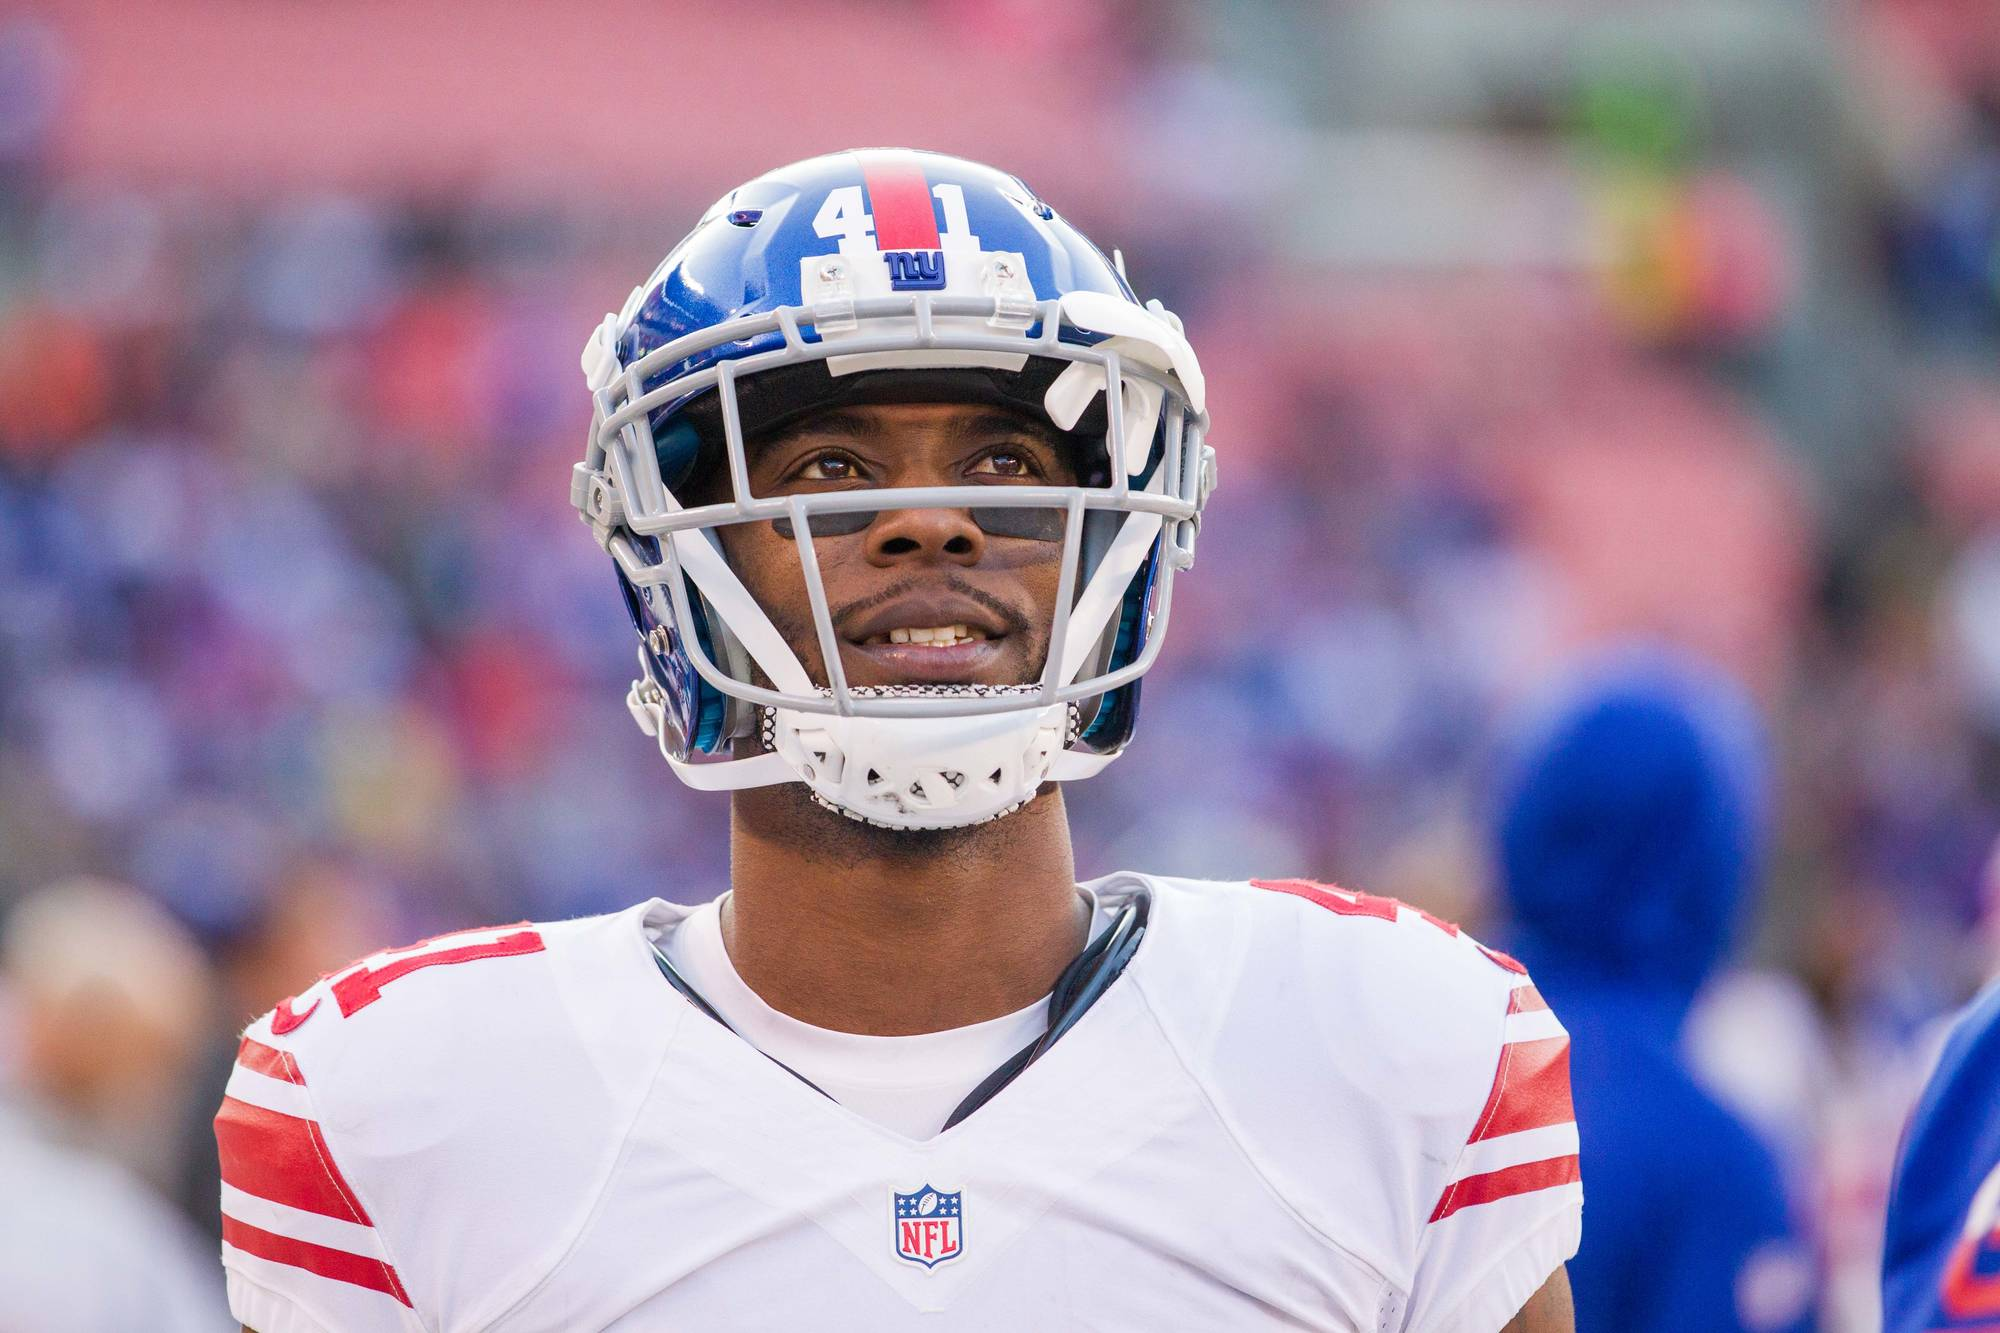 Giants to release CB Dominique Rodgers-Cromartie